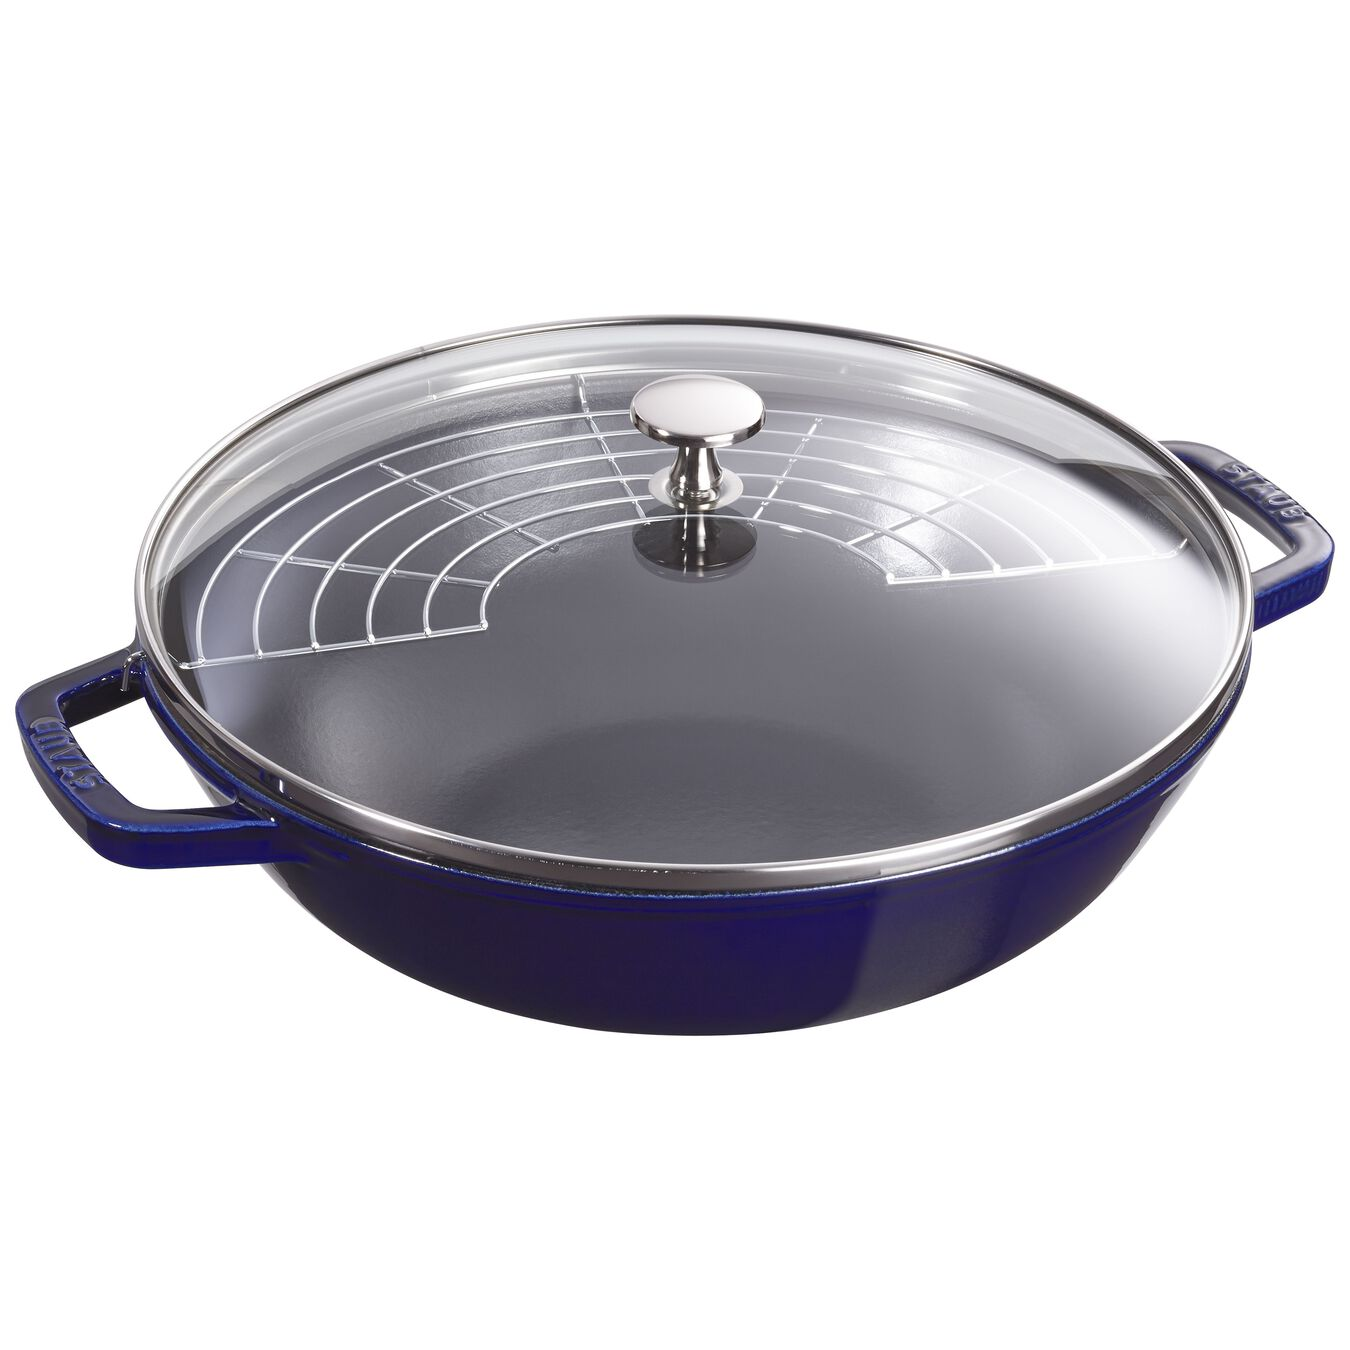 30 cm Cast iron Wok with glass lid, Dark-Blue,,large 2